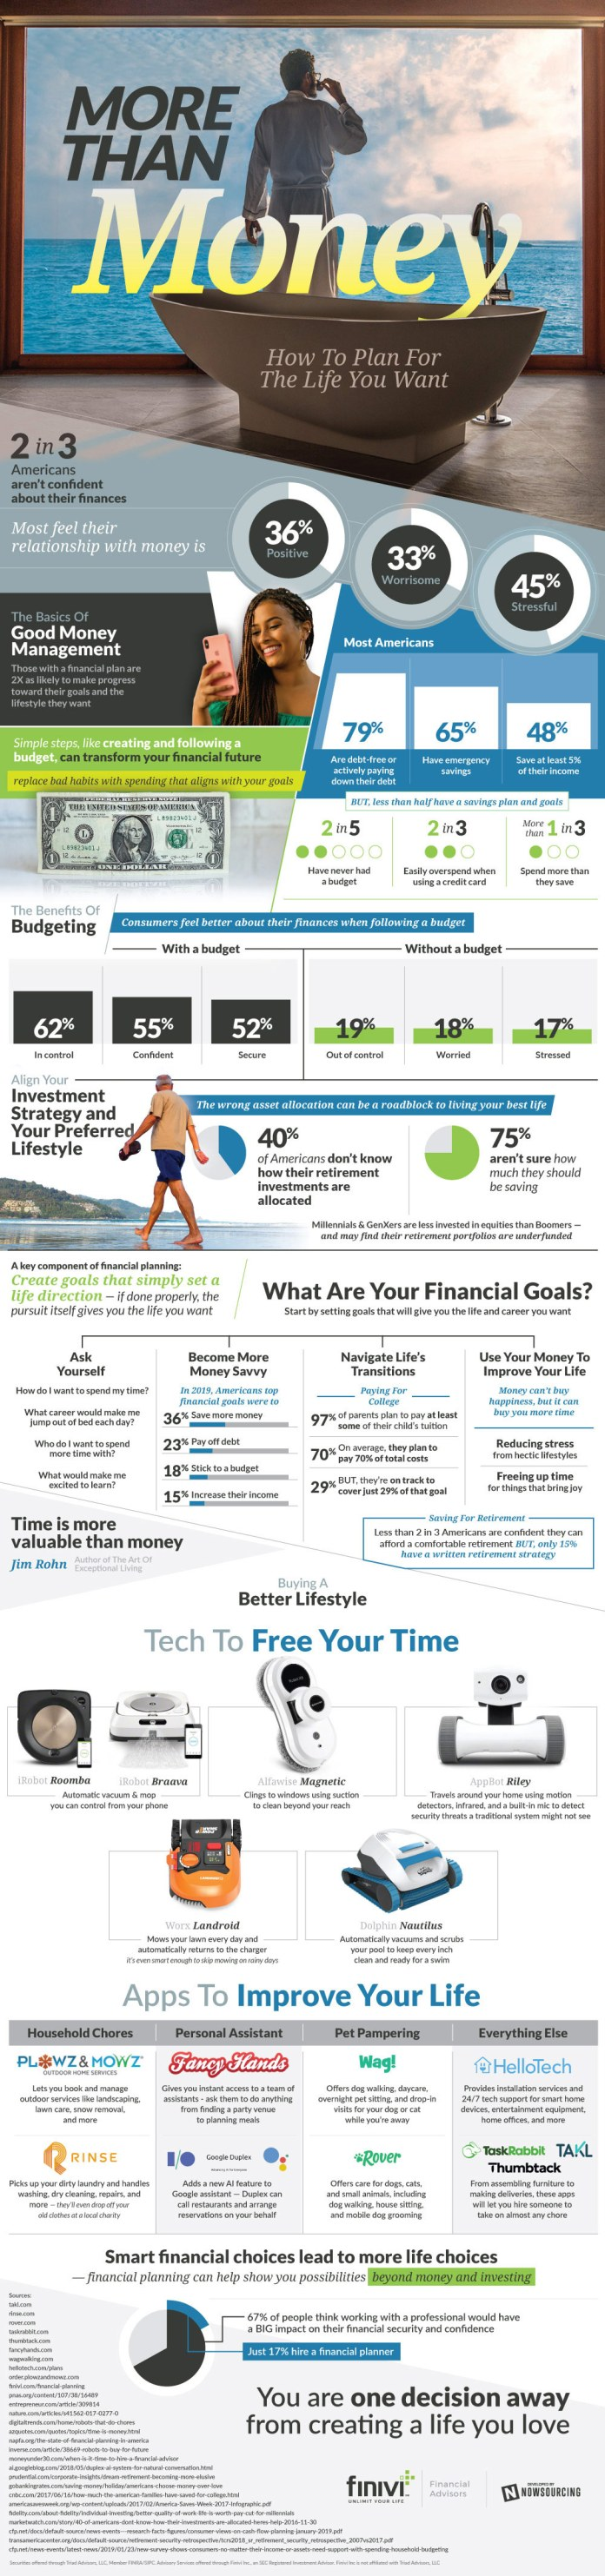 Financial Planning: How To Live Your Best Life 1